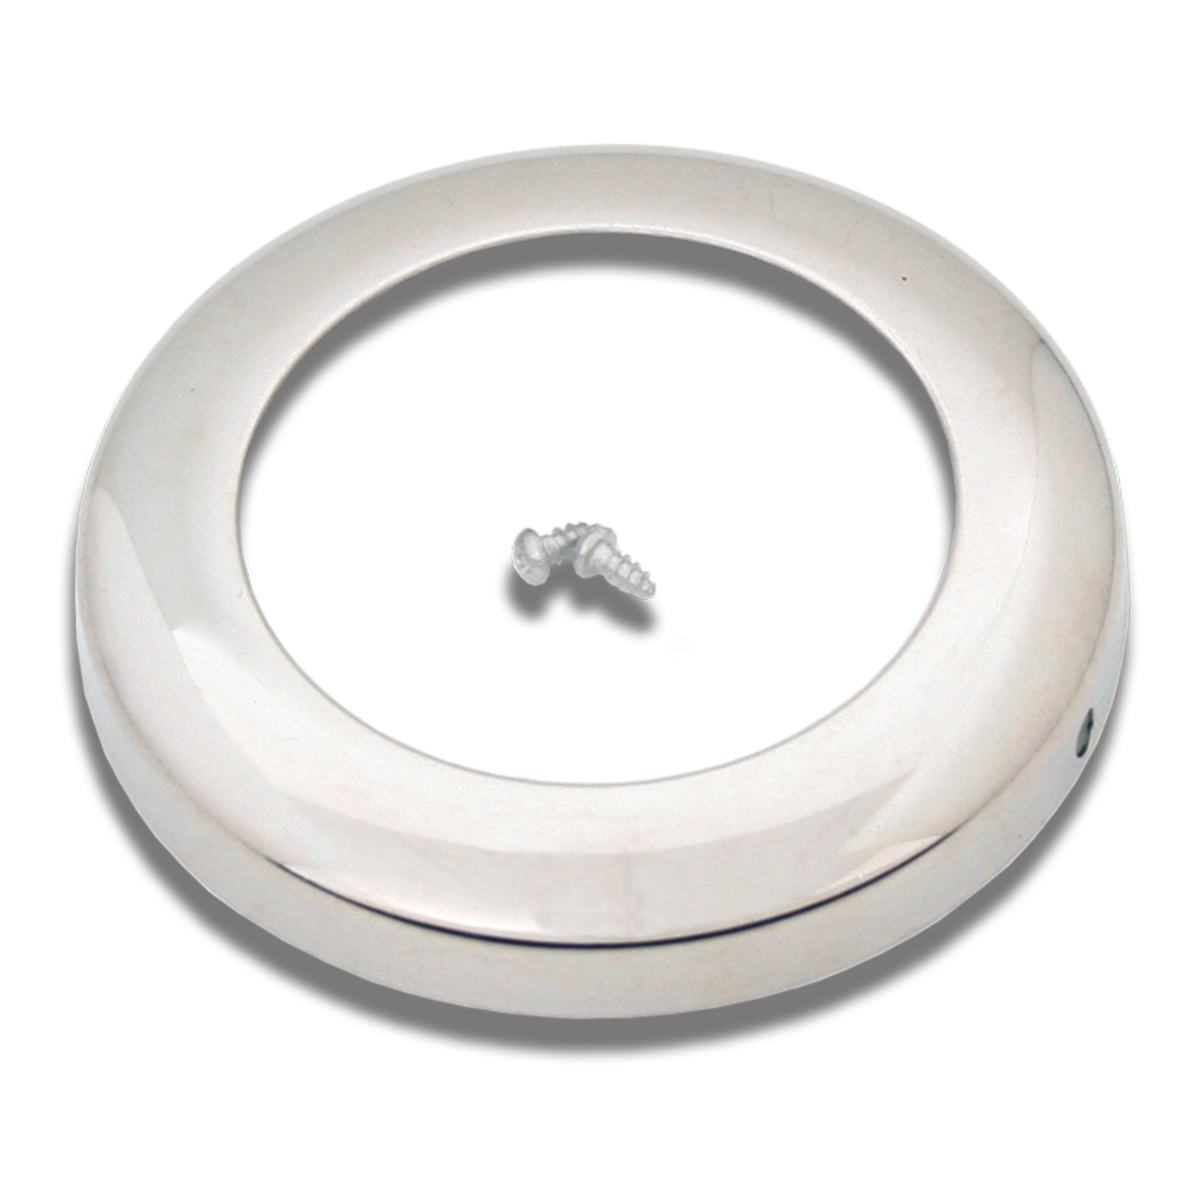 "82348 Stainless Steel Grommet Cover in Full Collar Style for 2"" Round Light"